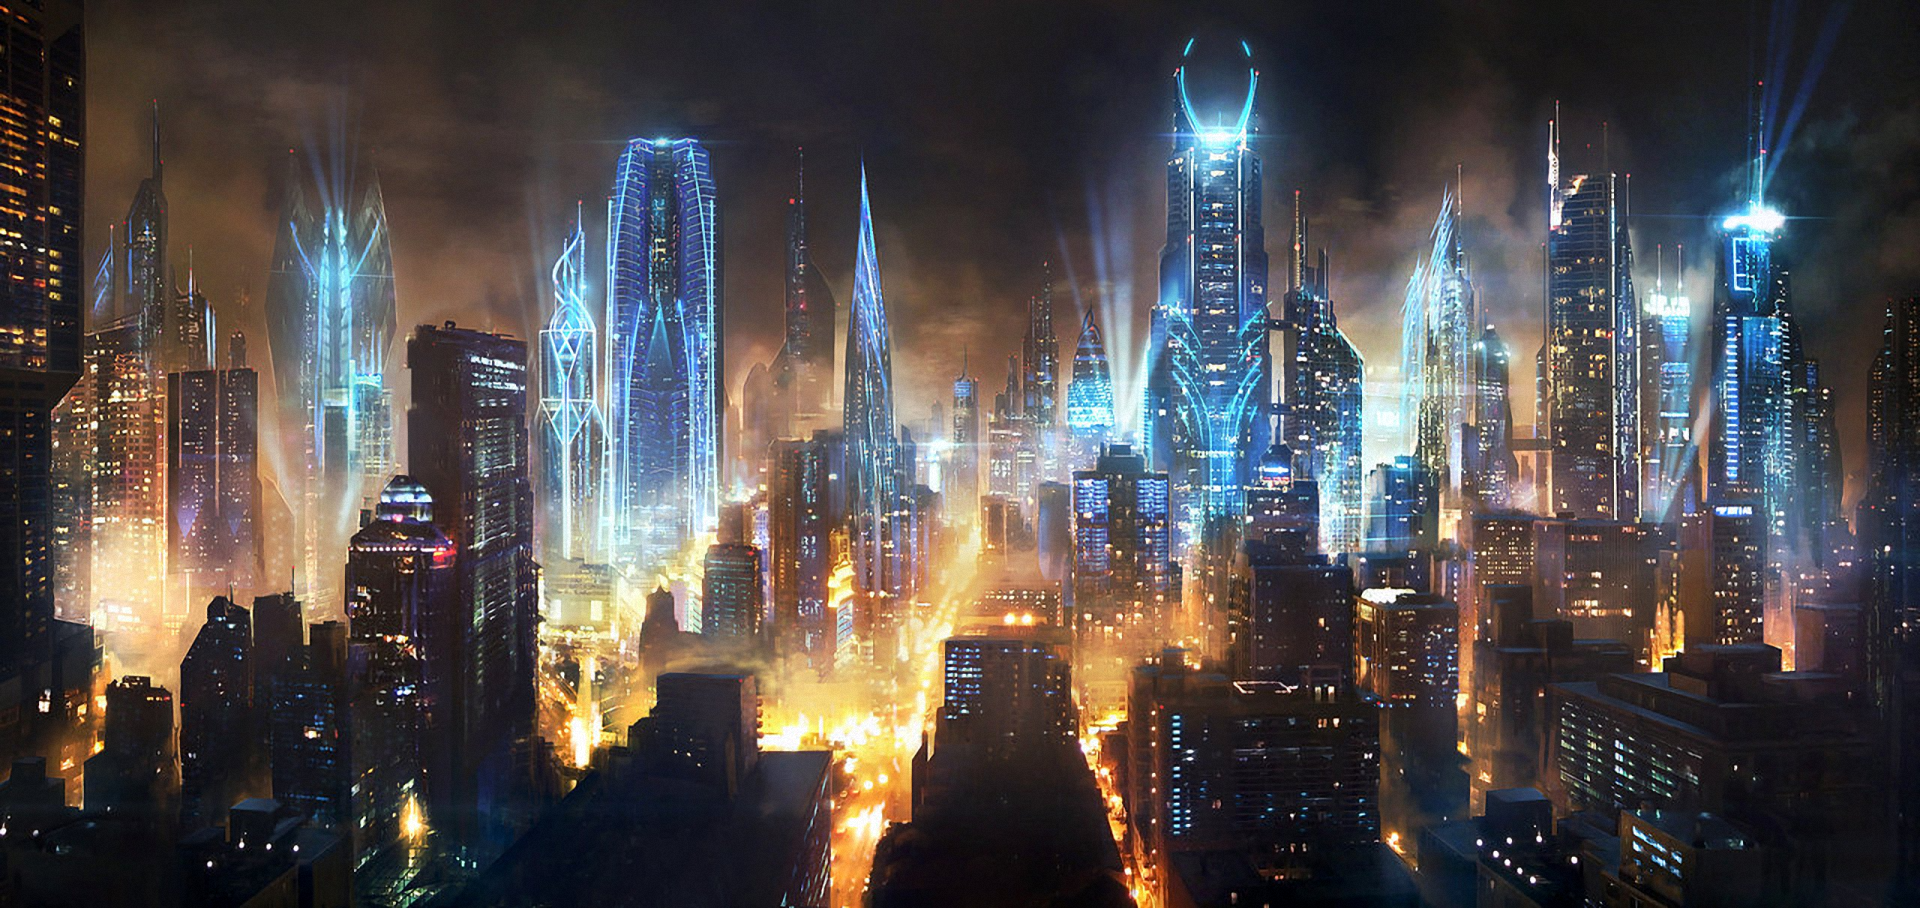 Pin By S B On Cool City Sci Fi Pictures Futuristic City